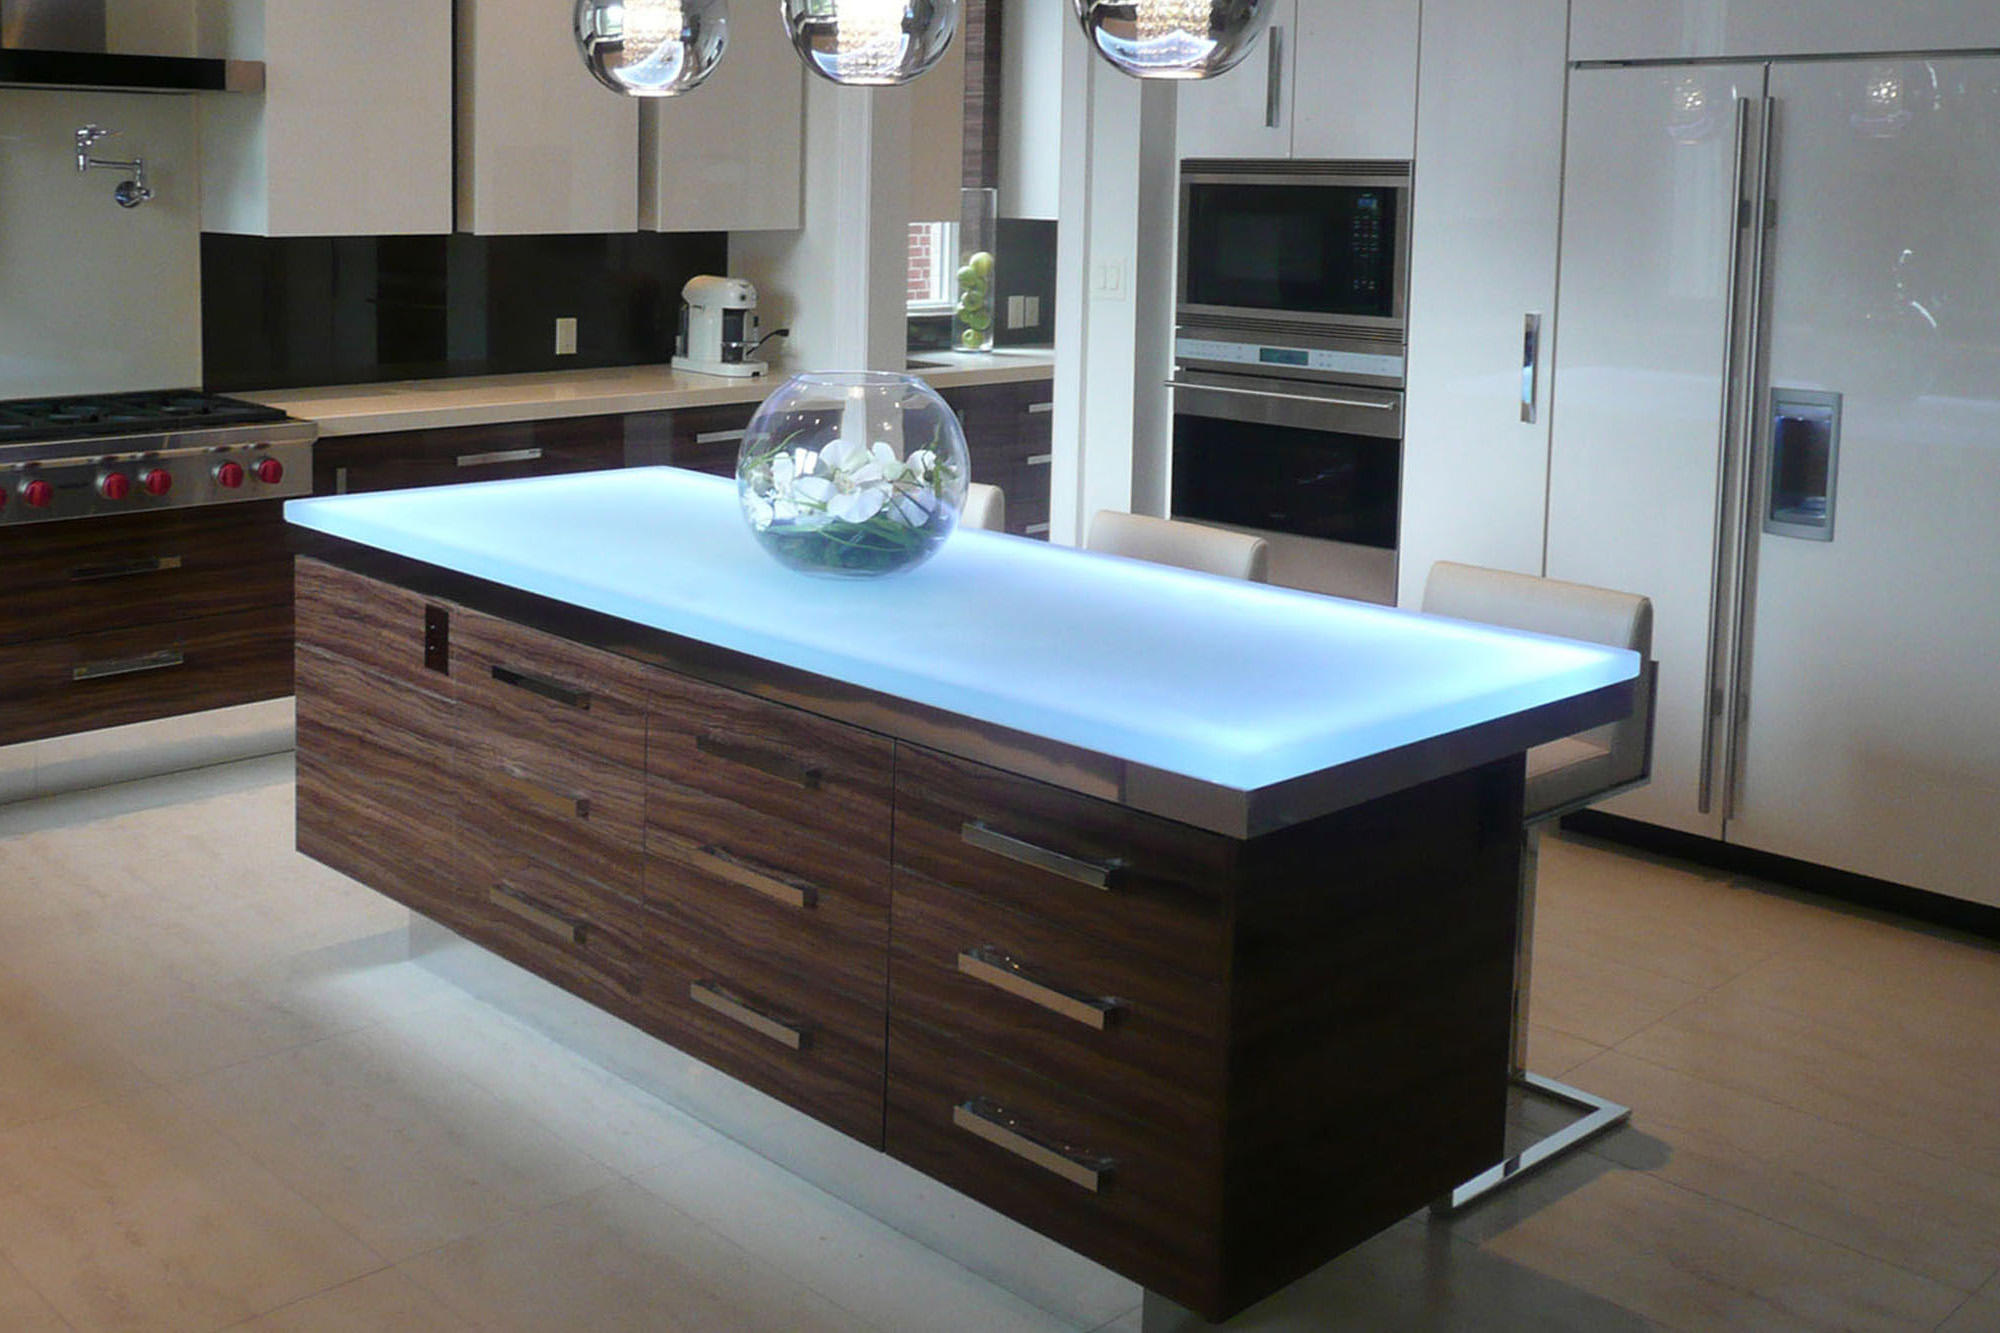 Kitchen Cabinet And Countertop Visualizer